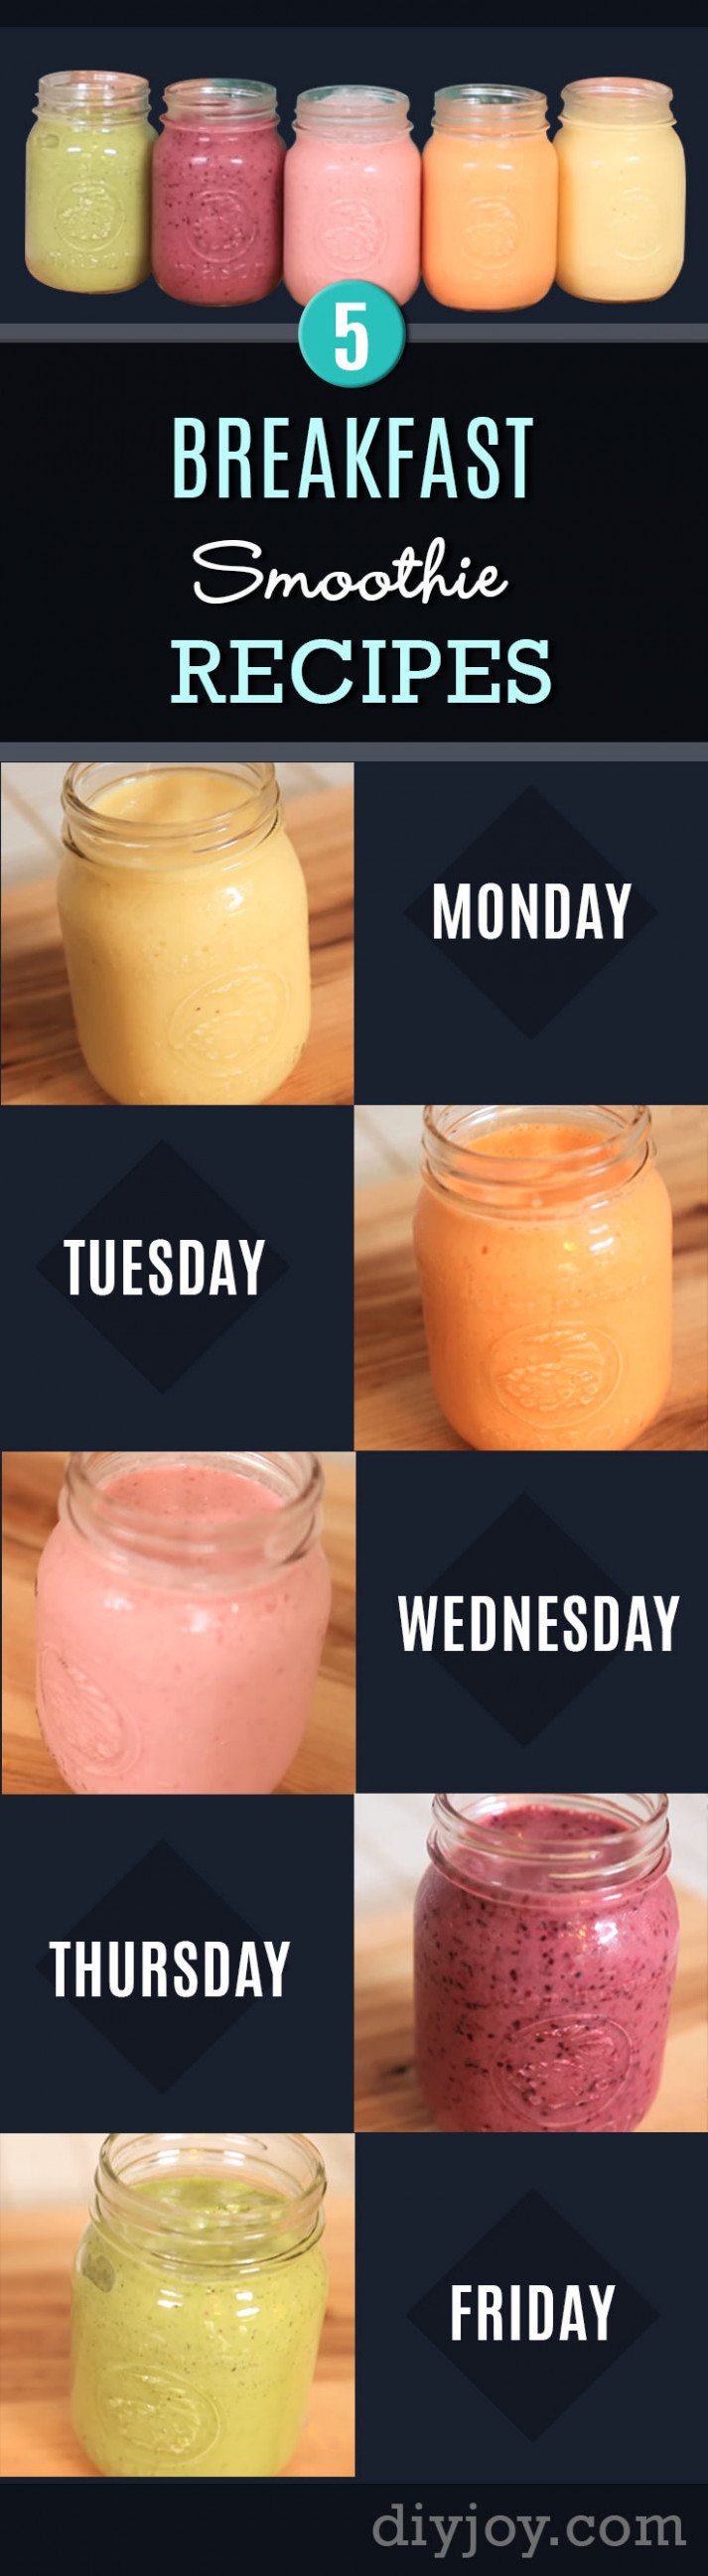 Monday to Friday - 5 Ultimate Breakfast Smoothie Recipes!